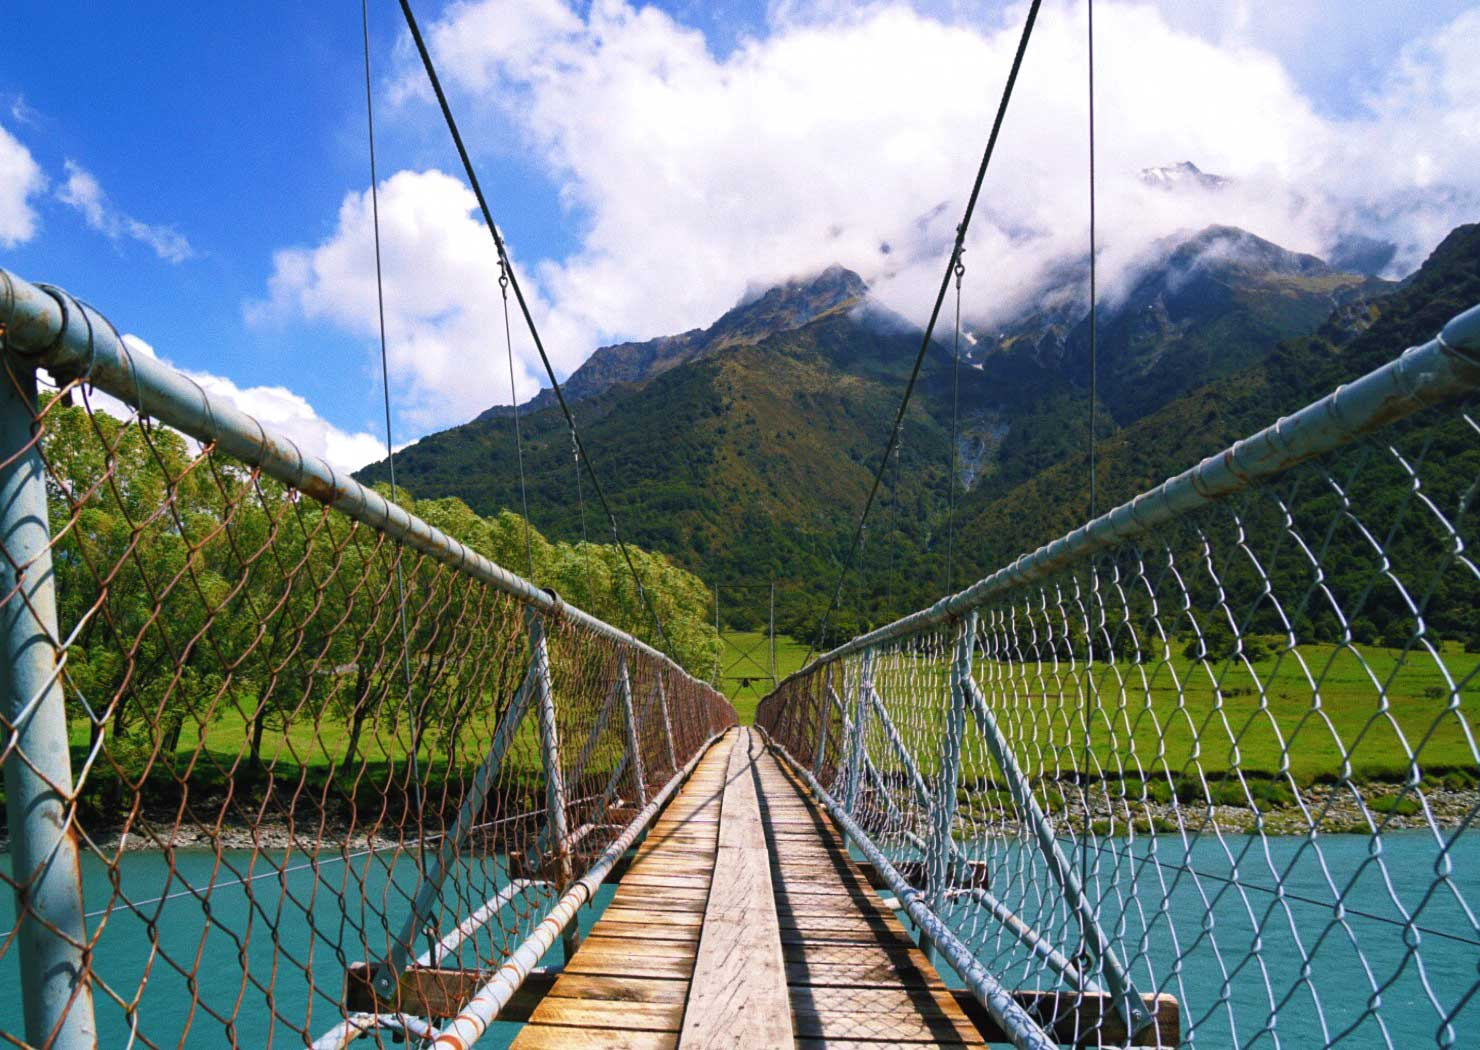 thereafterish, new zealand matukituki river running through matukituki valley and suspension bridge over river